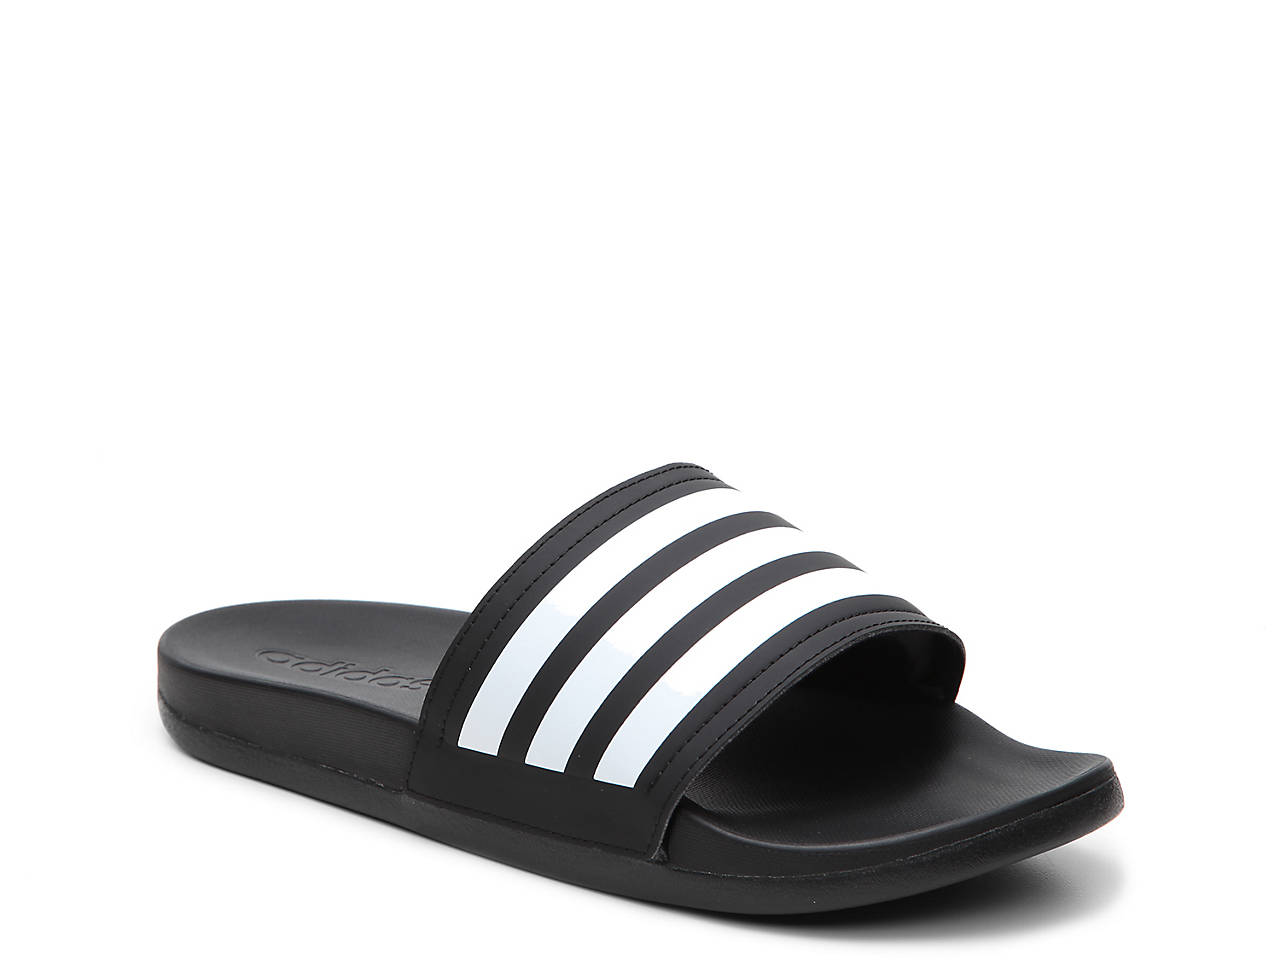 adidas Adilette Cloudfoam Ultra Stripes Slide Sandal - Women s ... 242832ded